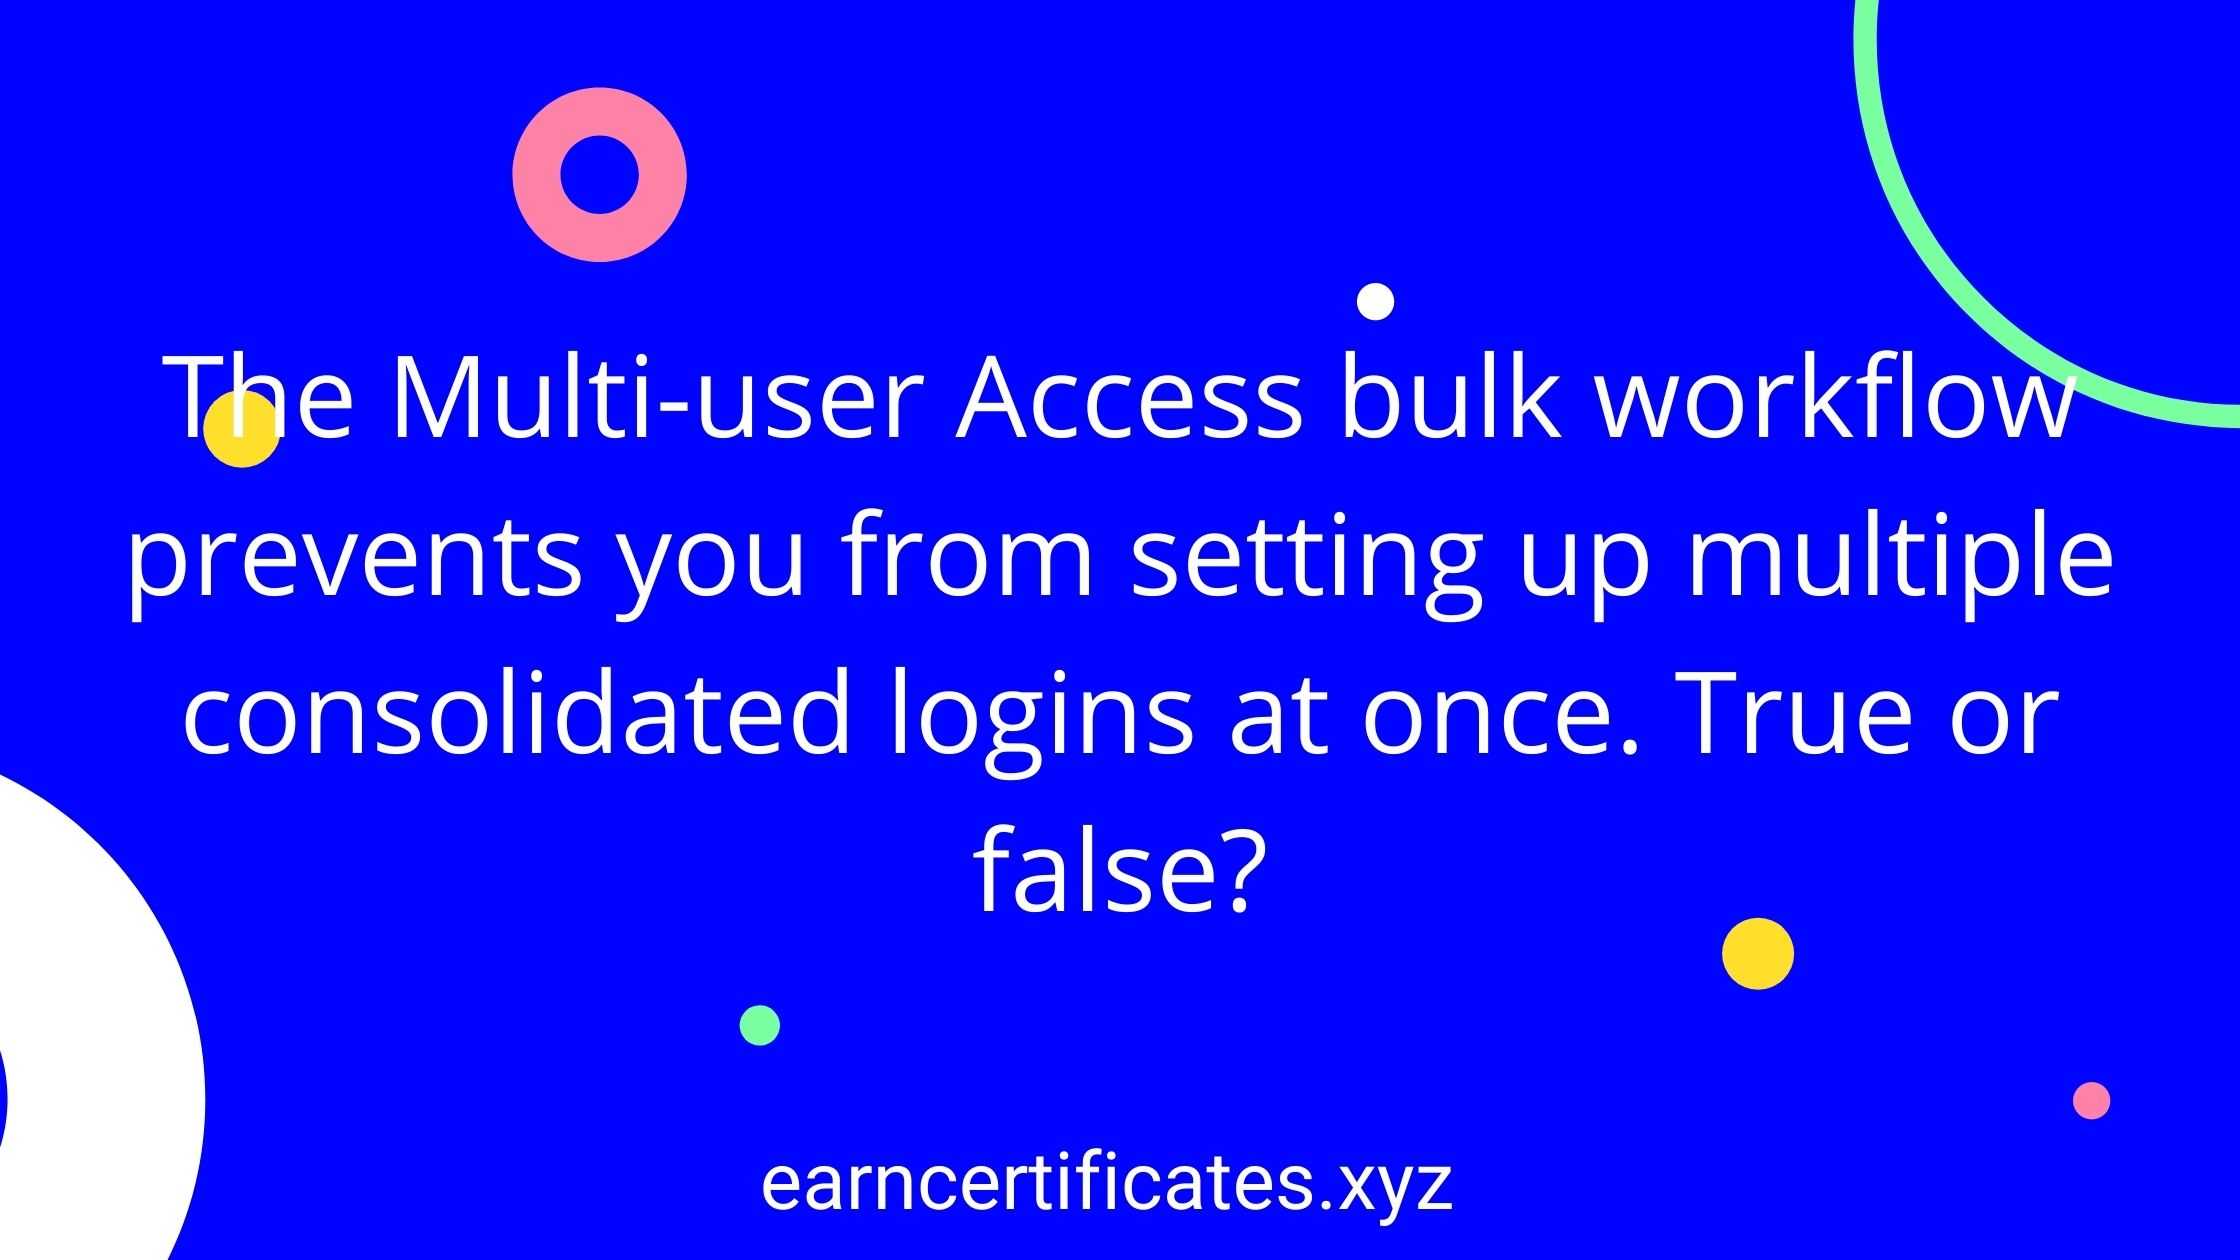 The Multi-user Access bulk workflow prevents you from setting up multiple consolidated logins at once. True or false?